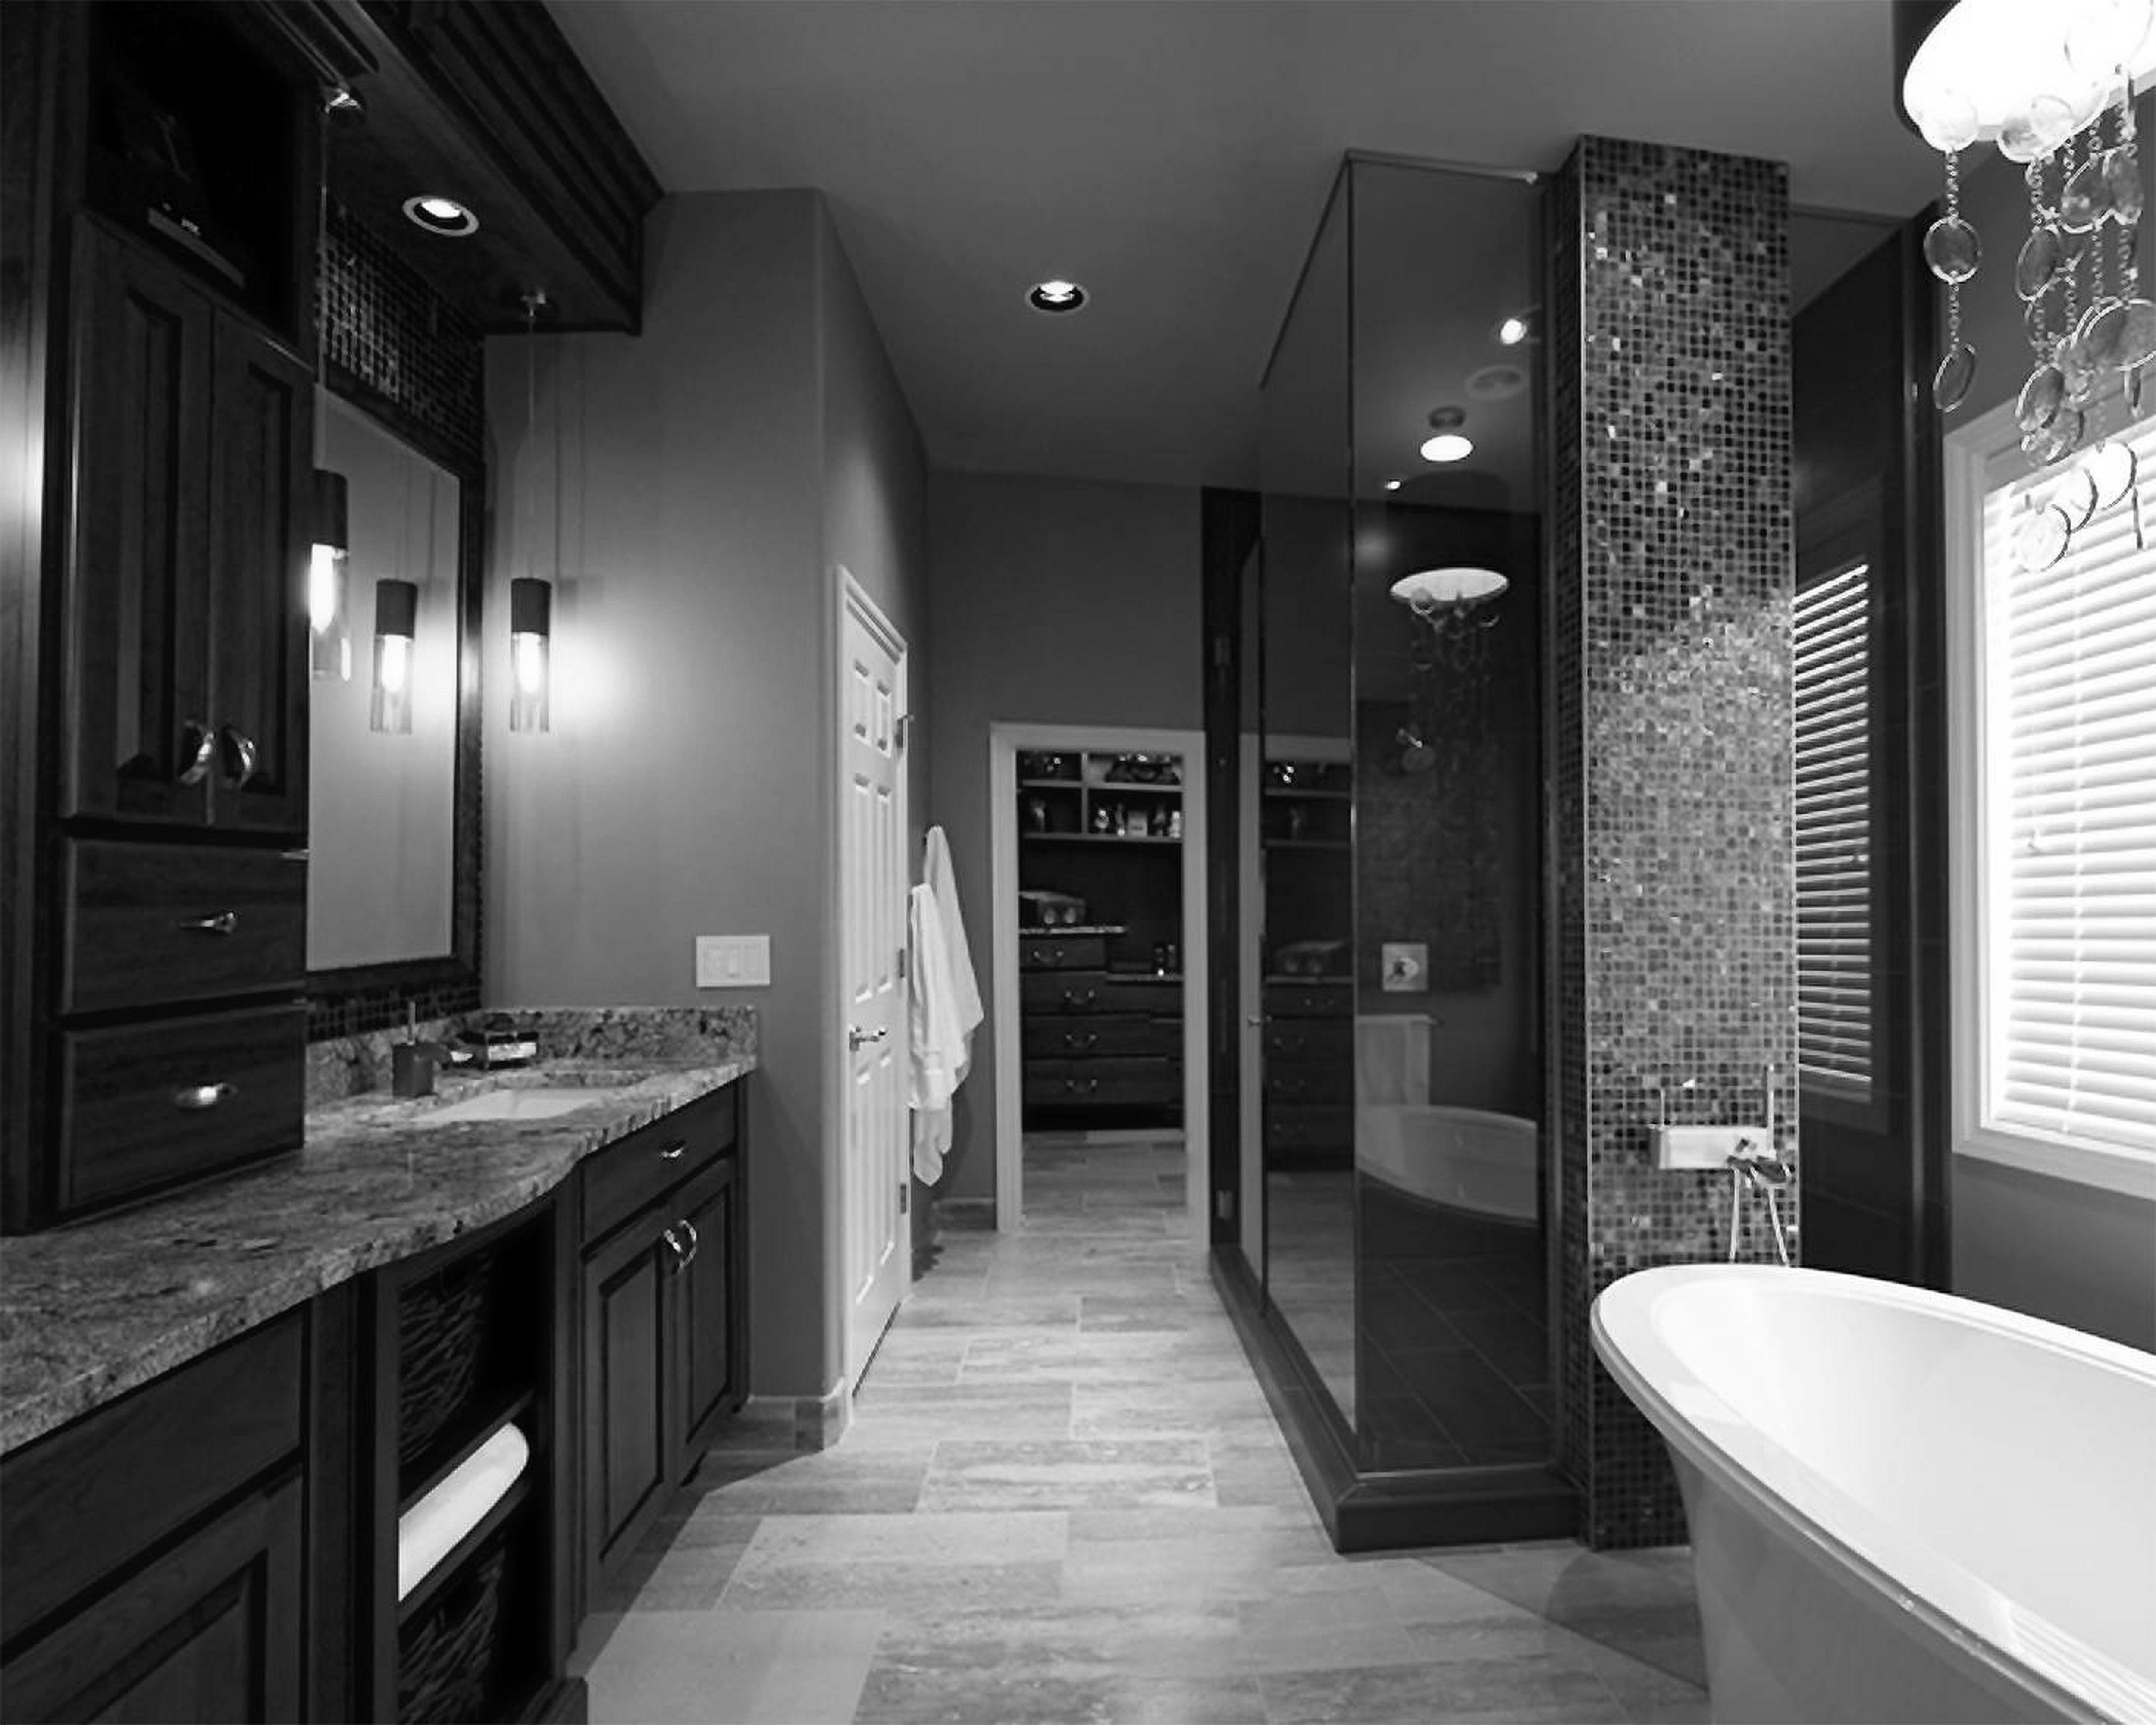 36 Extraordinary Black And White Bathrooms Ideas That Will Inspire And Motivate You Look Fabulous Decoratorist